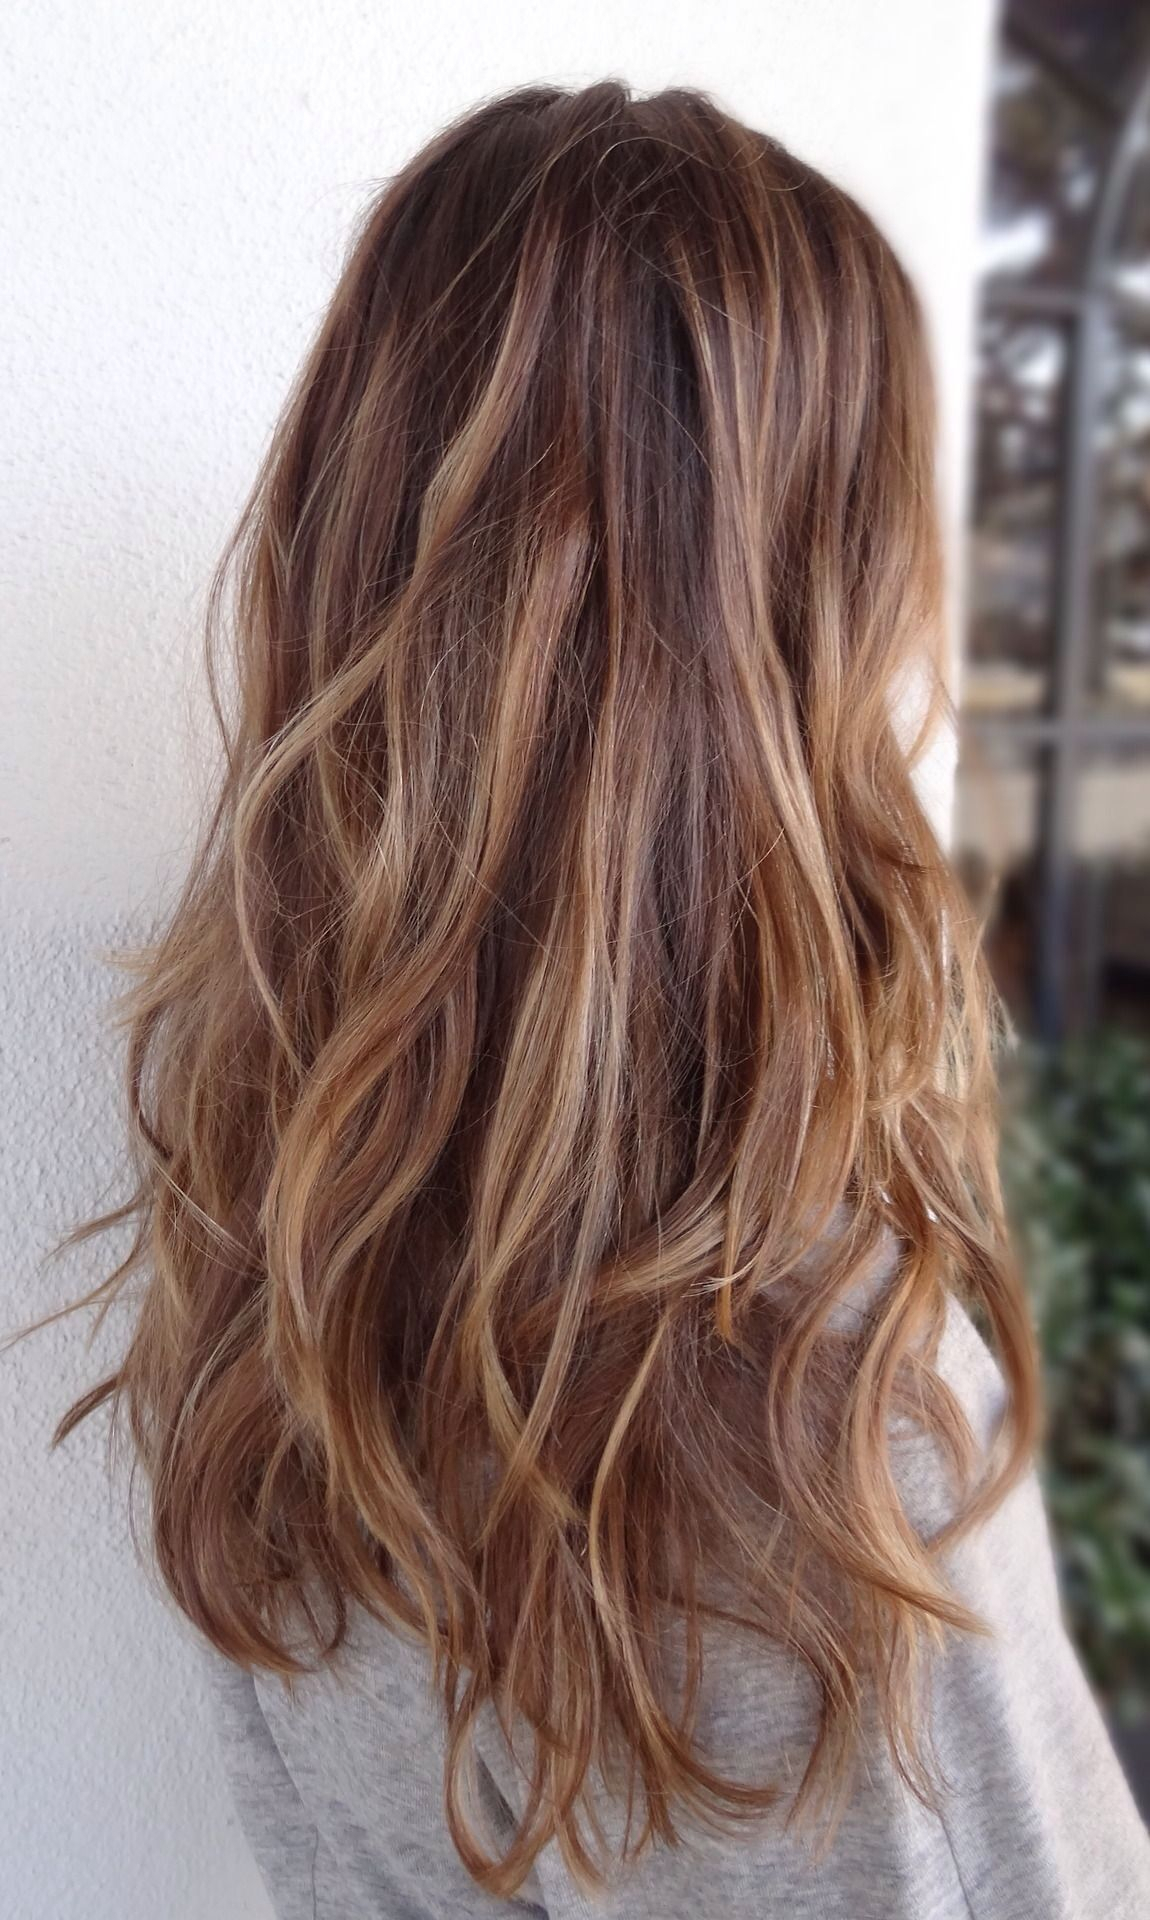 10 Awesome Long Haircut And Color Ideas 40 hottest hair color ideas for 2018 brown red blonde balayage 2020